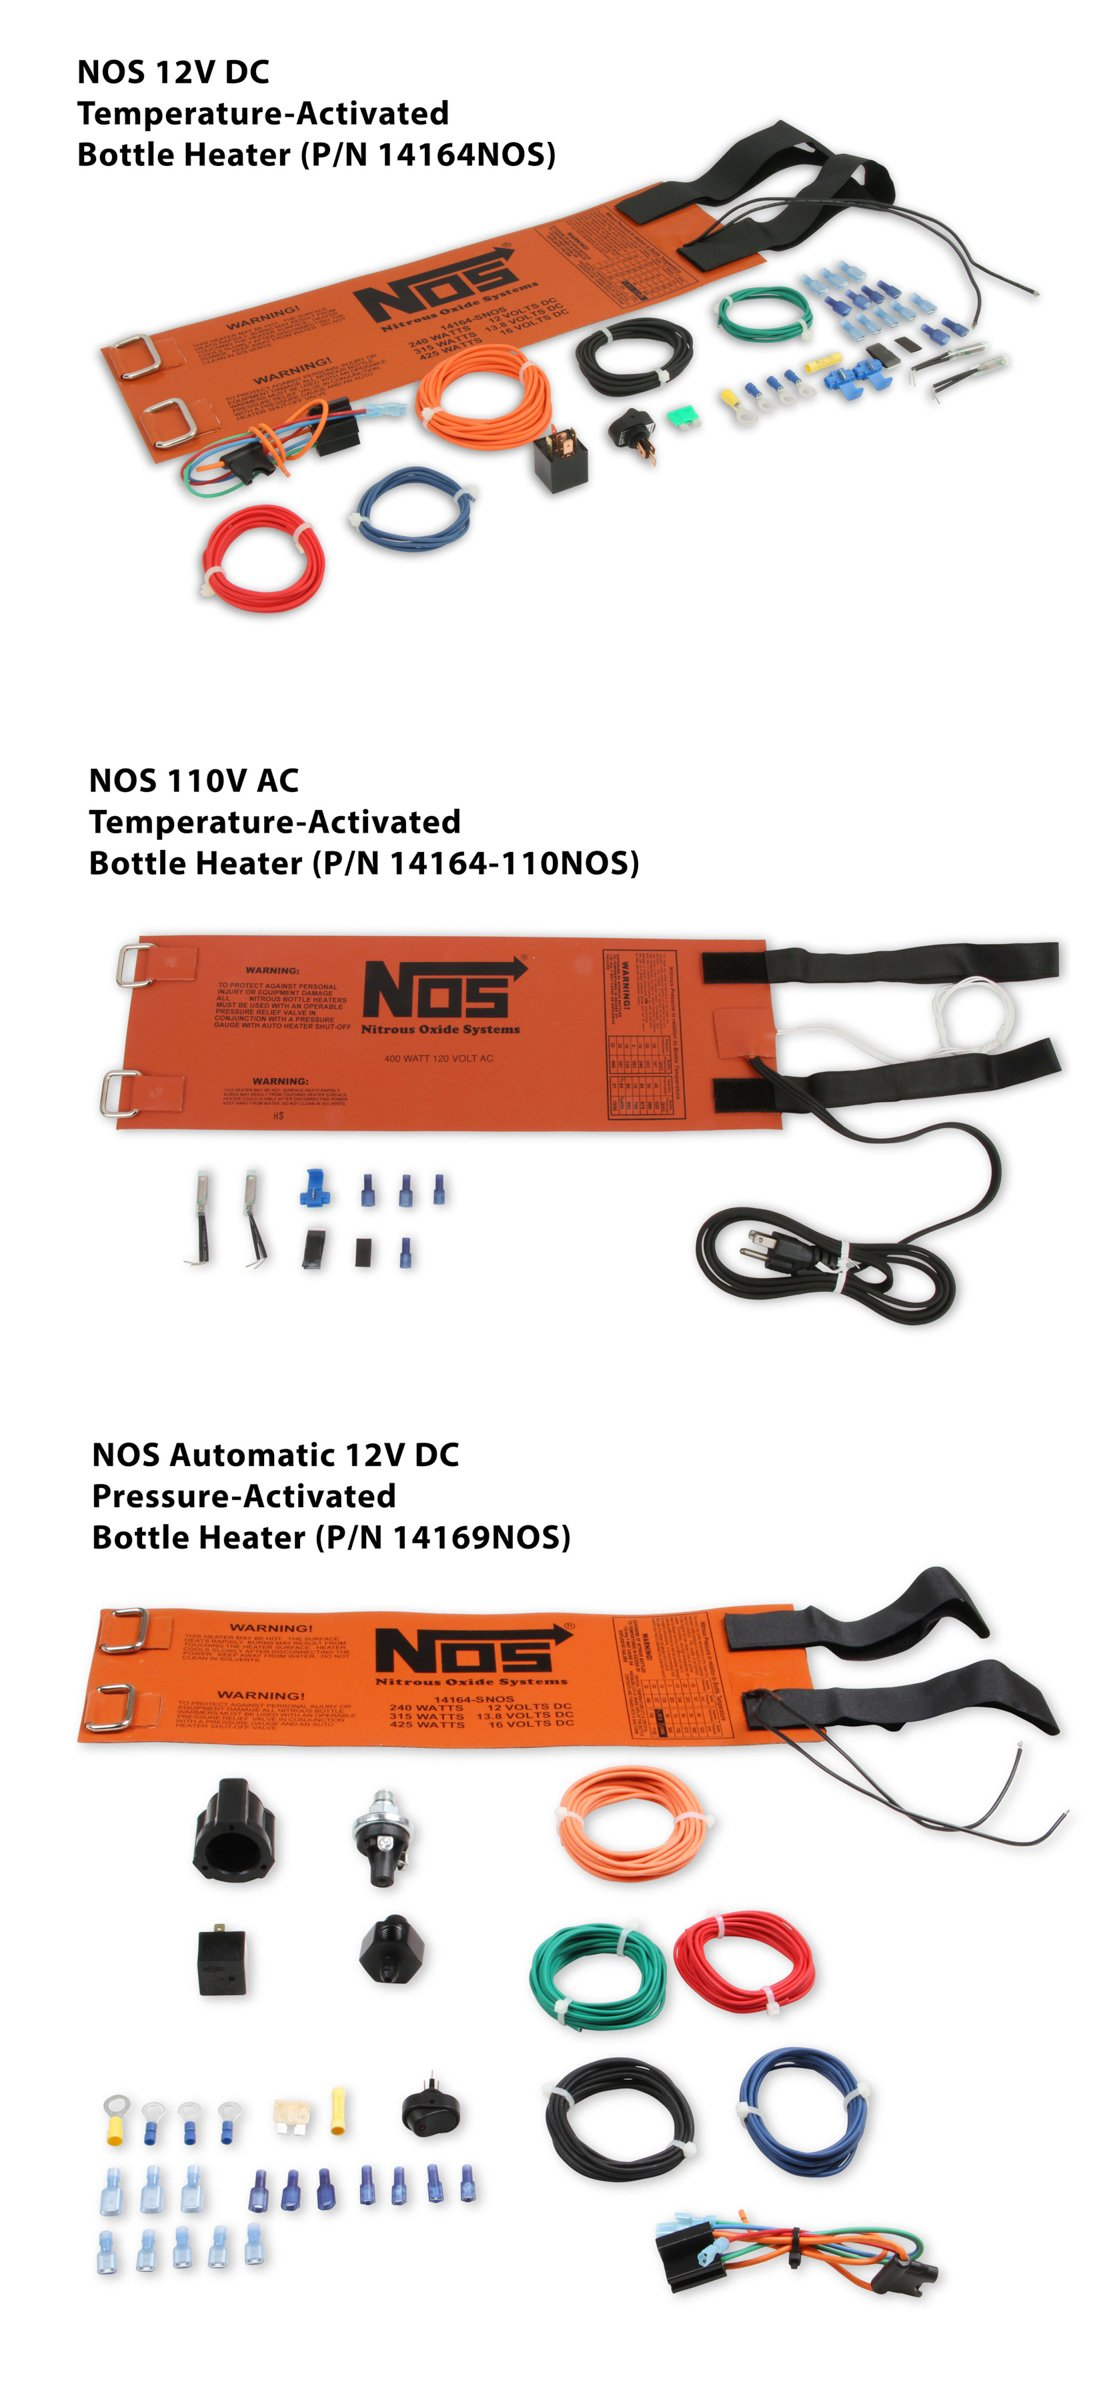 NOS Bottle Heaters layout